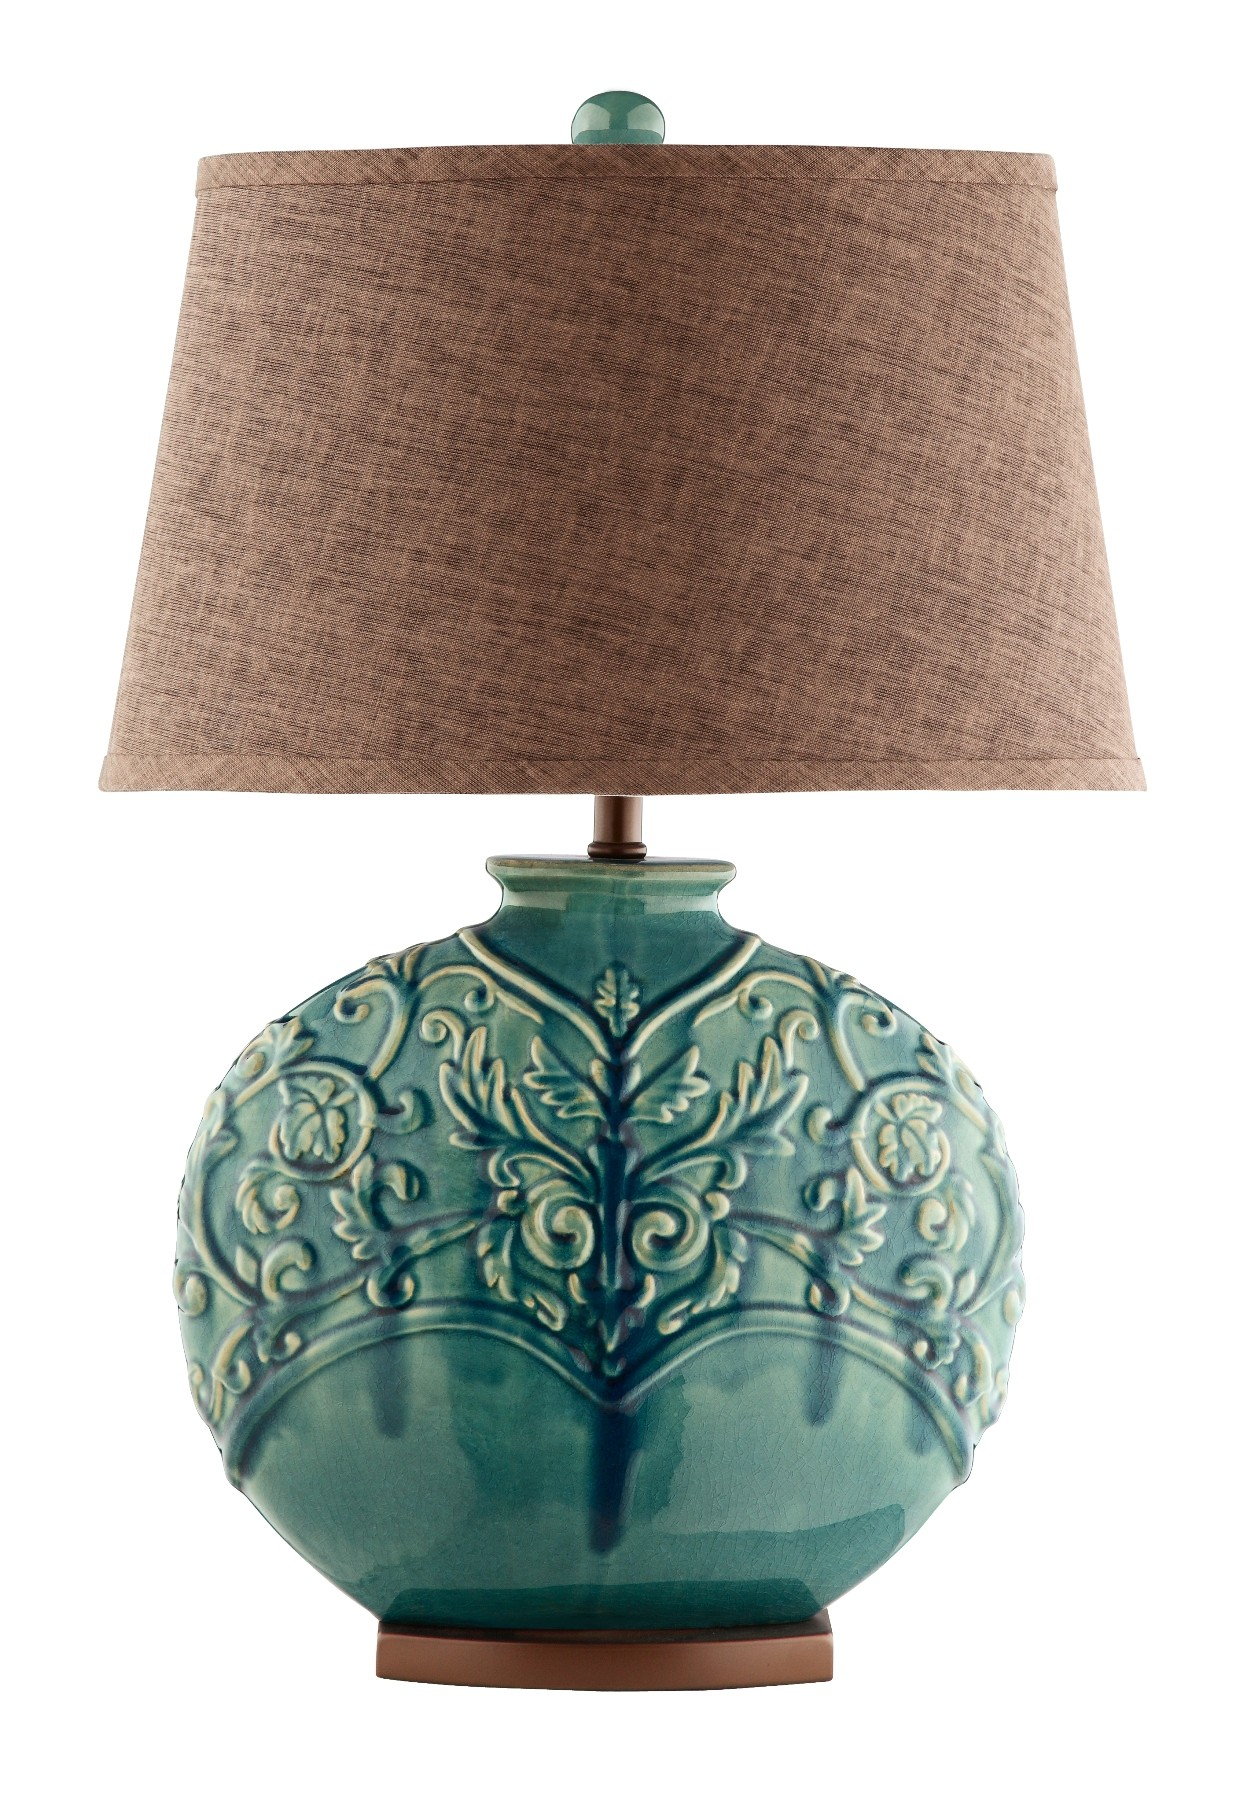 Ceramic Table Lamps : Turquoise green ceramic table lamp from steinworld